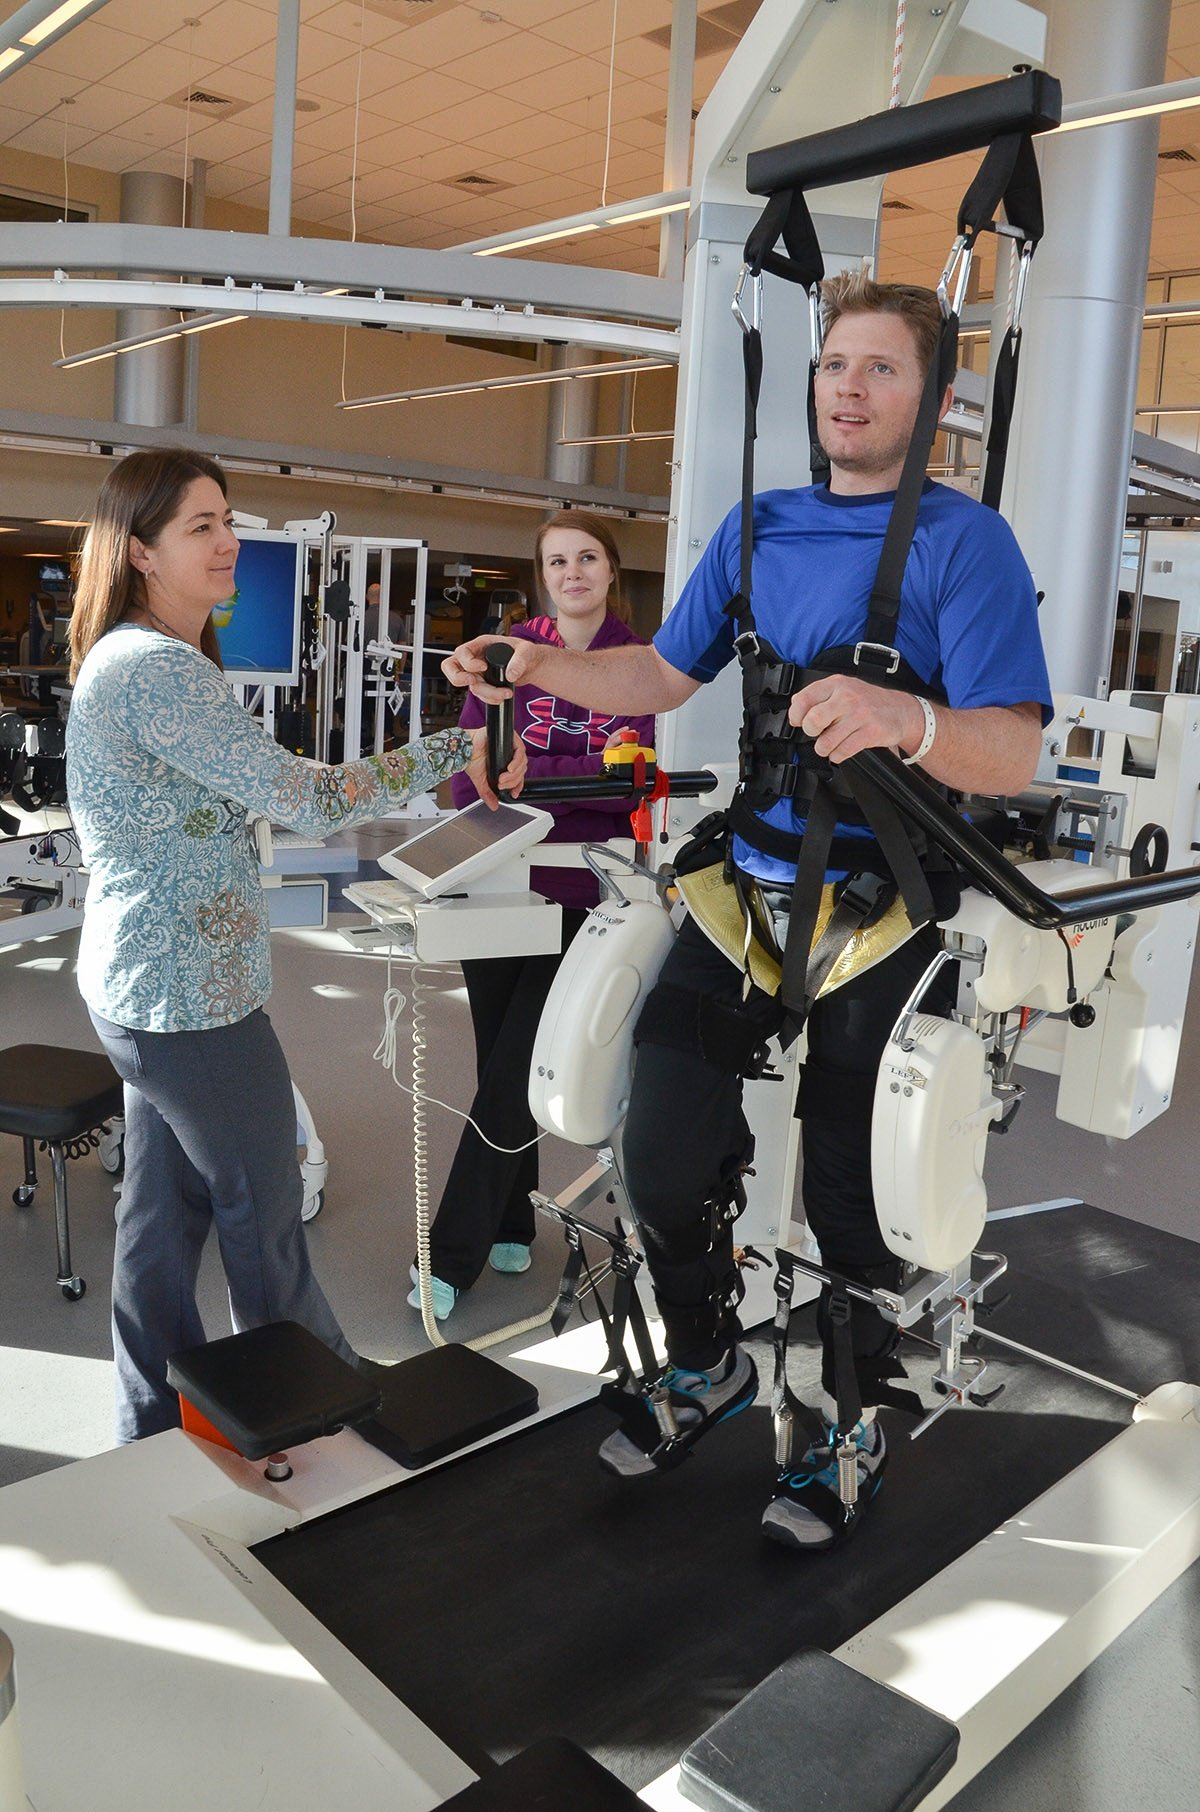 Jim Harris works with two physical therapists while strapped into an exercise machine